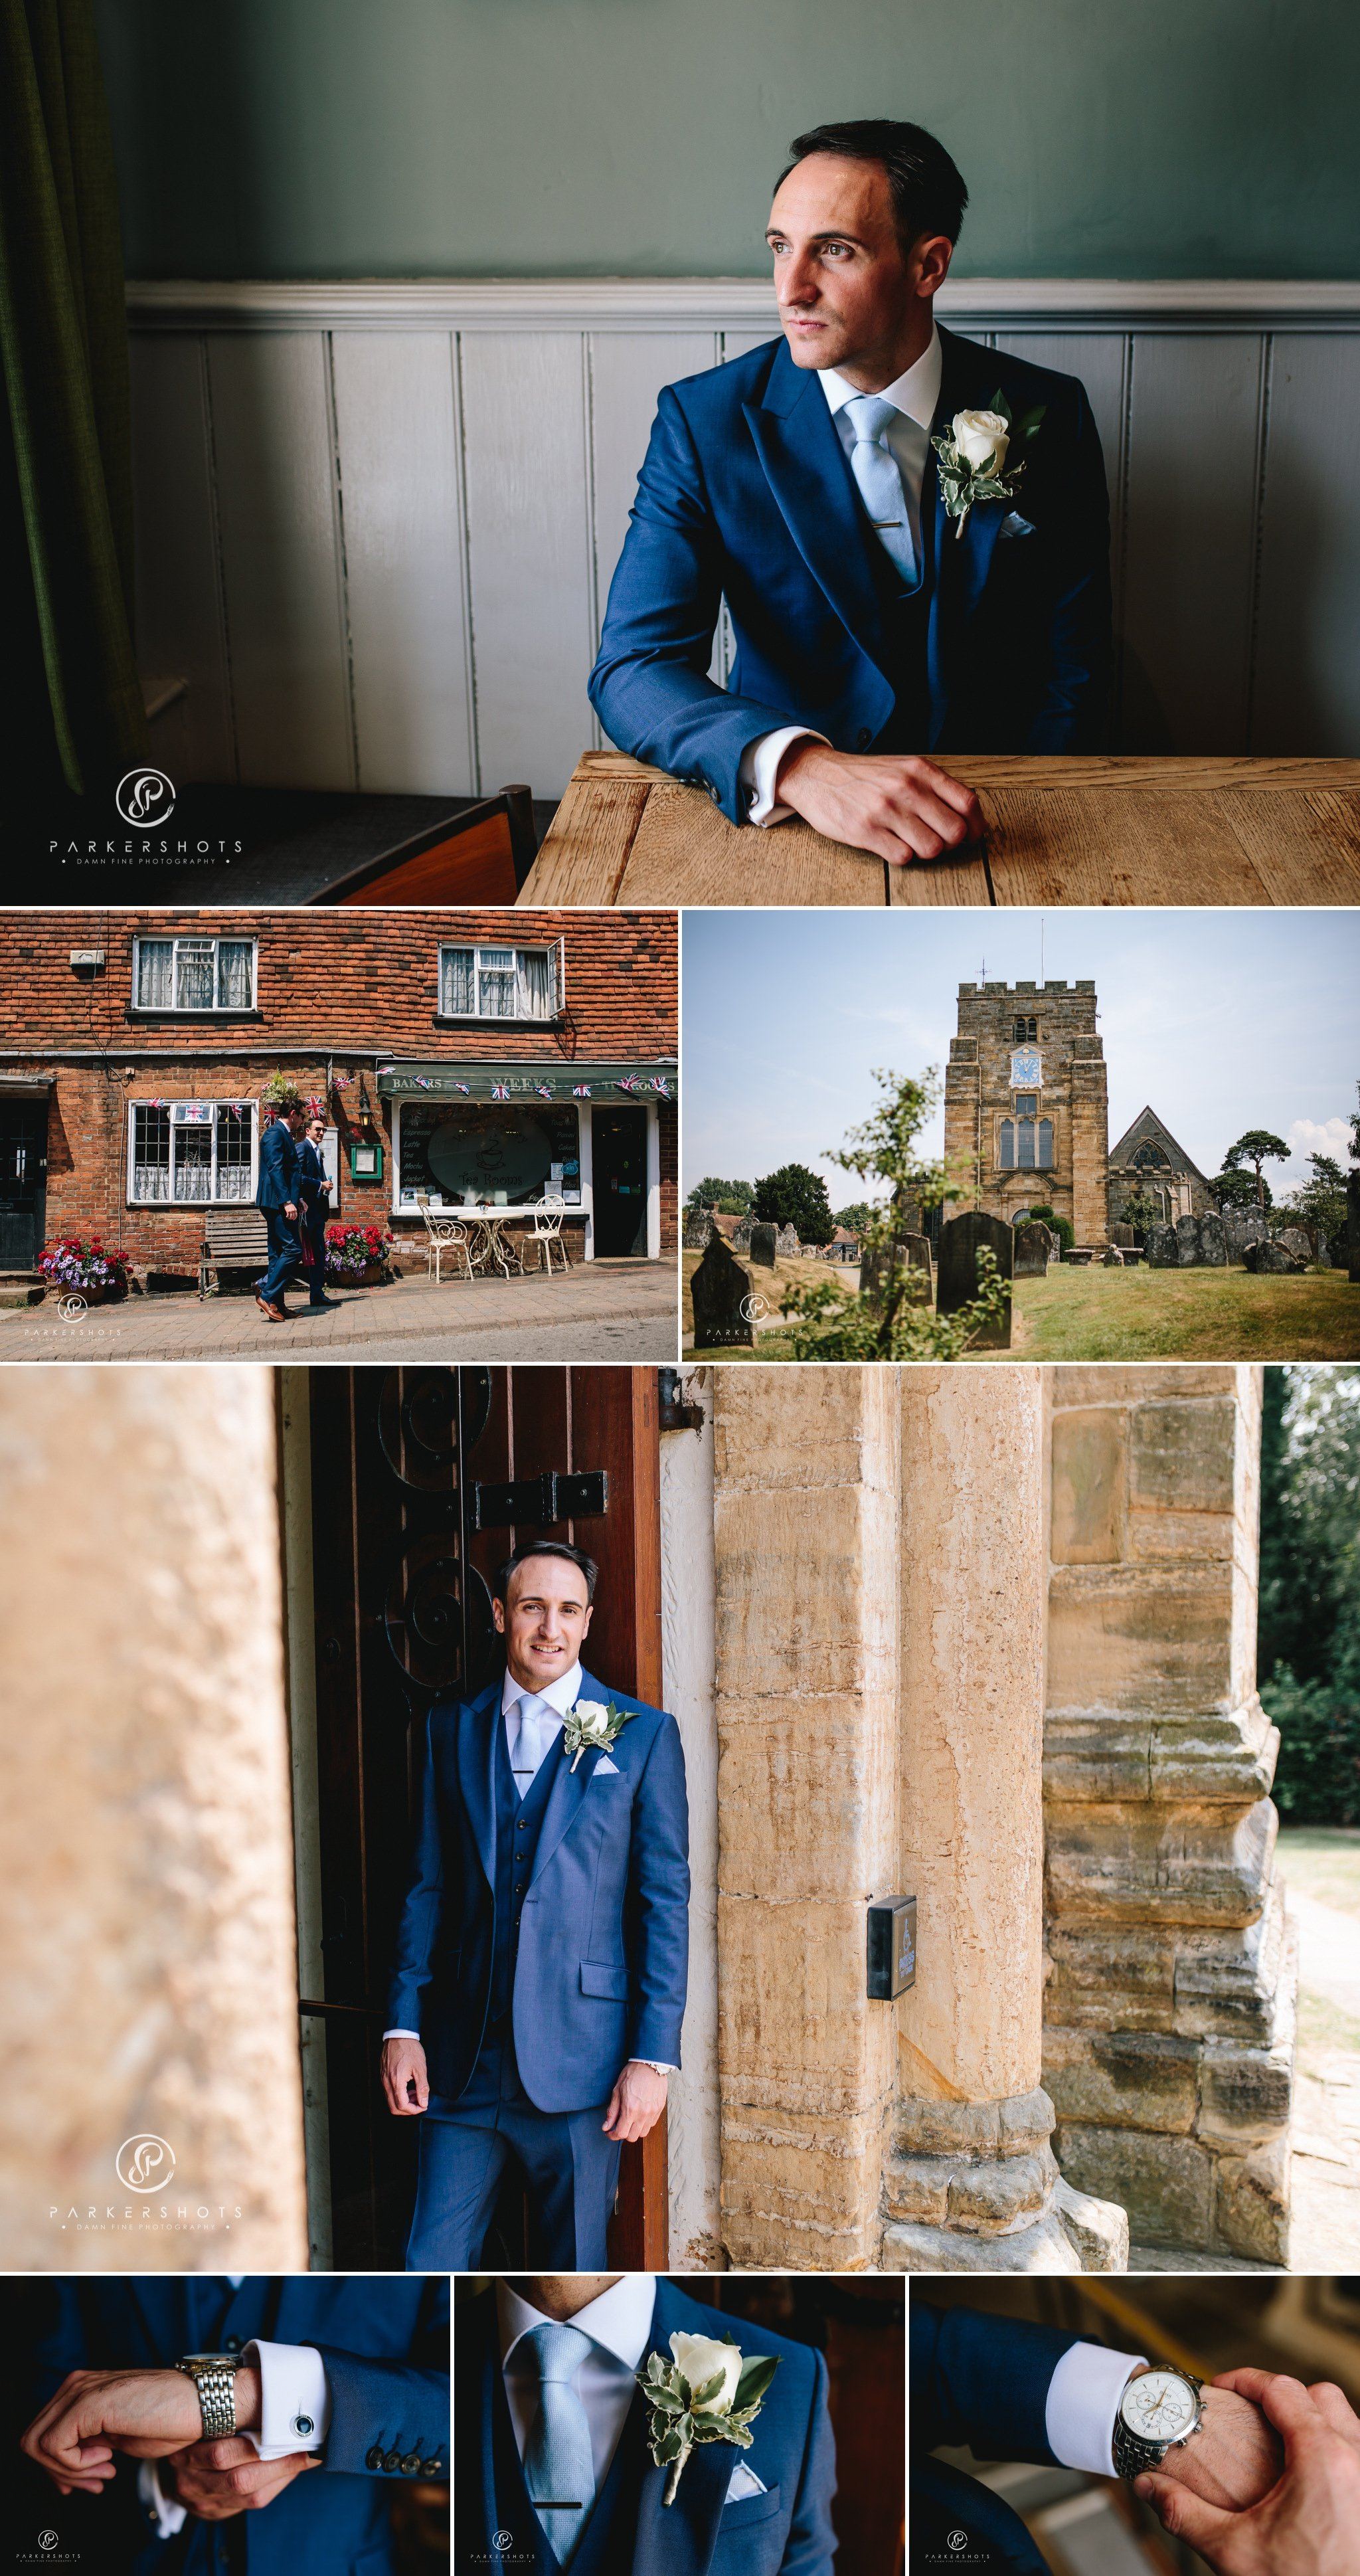 Wadhurst Castle Wedding Photographer - Portraits of Groom